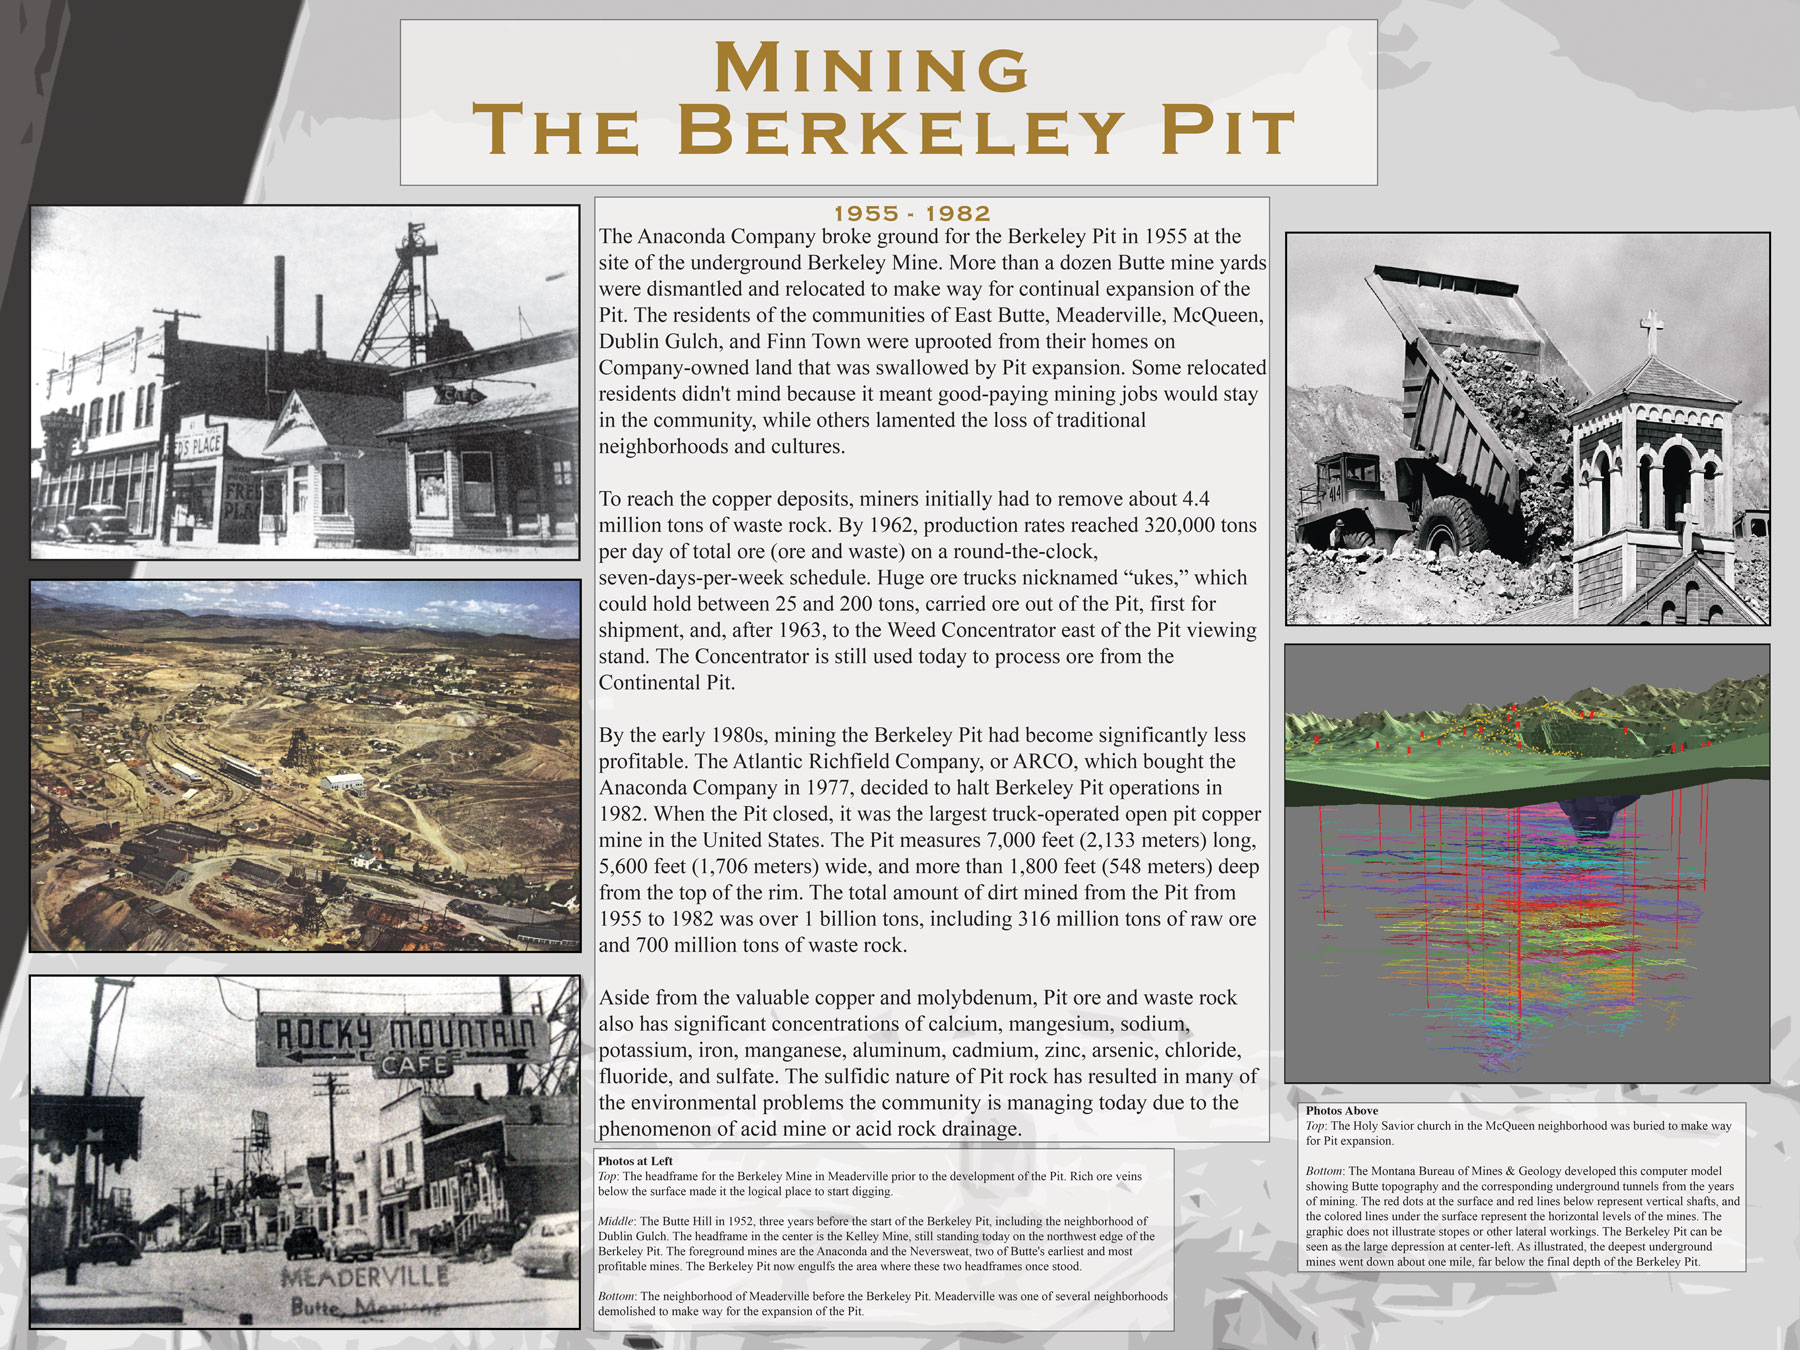 Berkeley Pit Poster Series: Mining the Berkeley Pit. Click on the image to view a larger version, or use the links at the bottom of the page to download a high-resolution version.